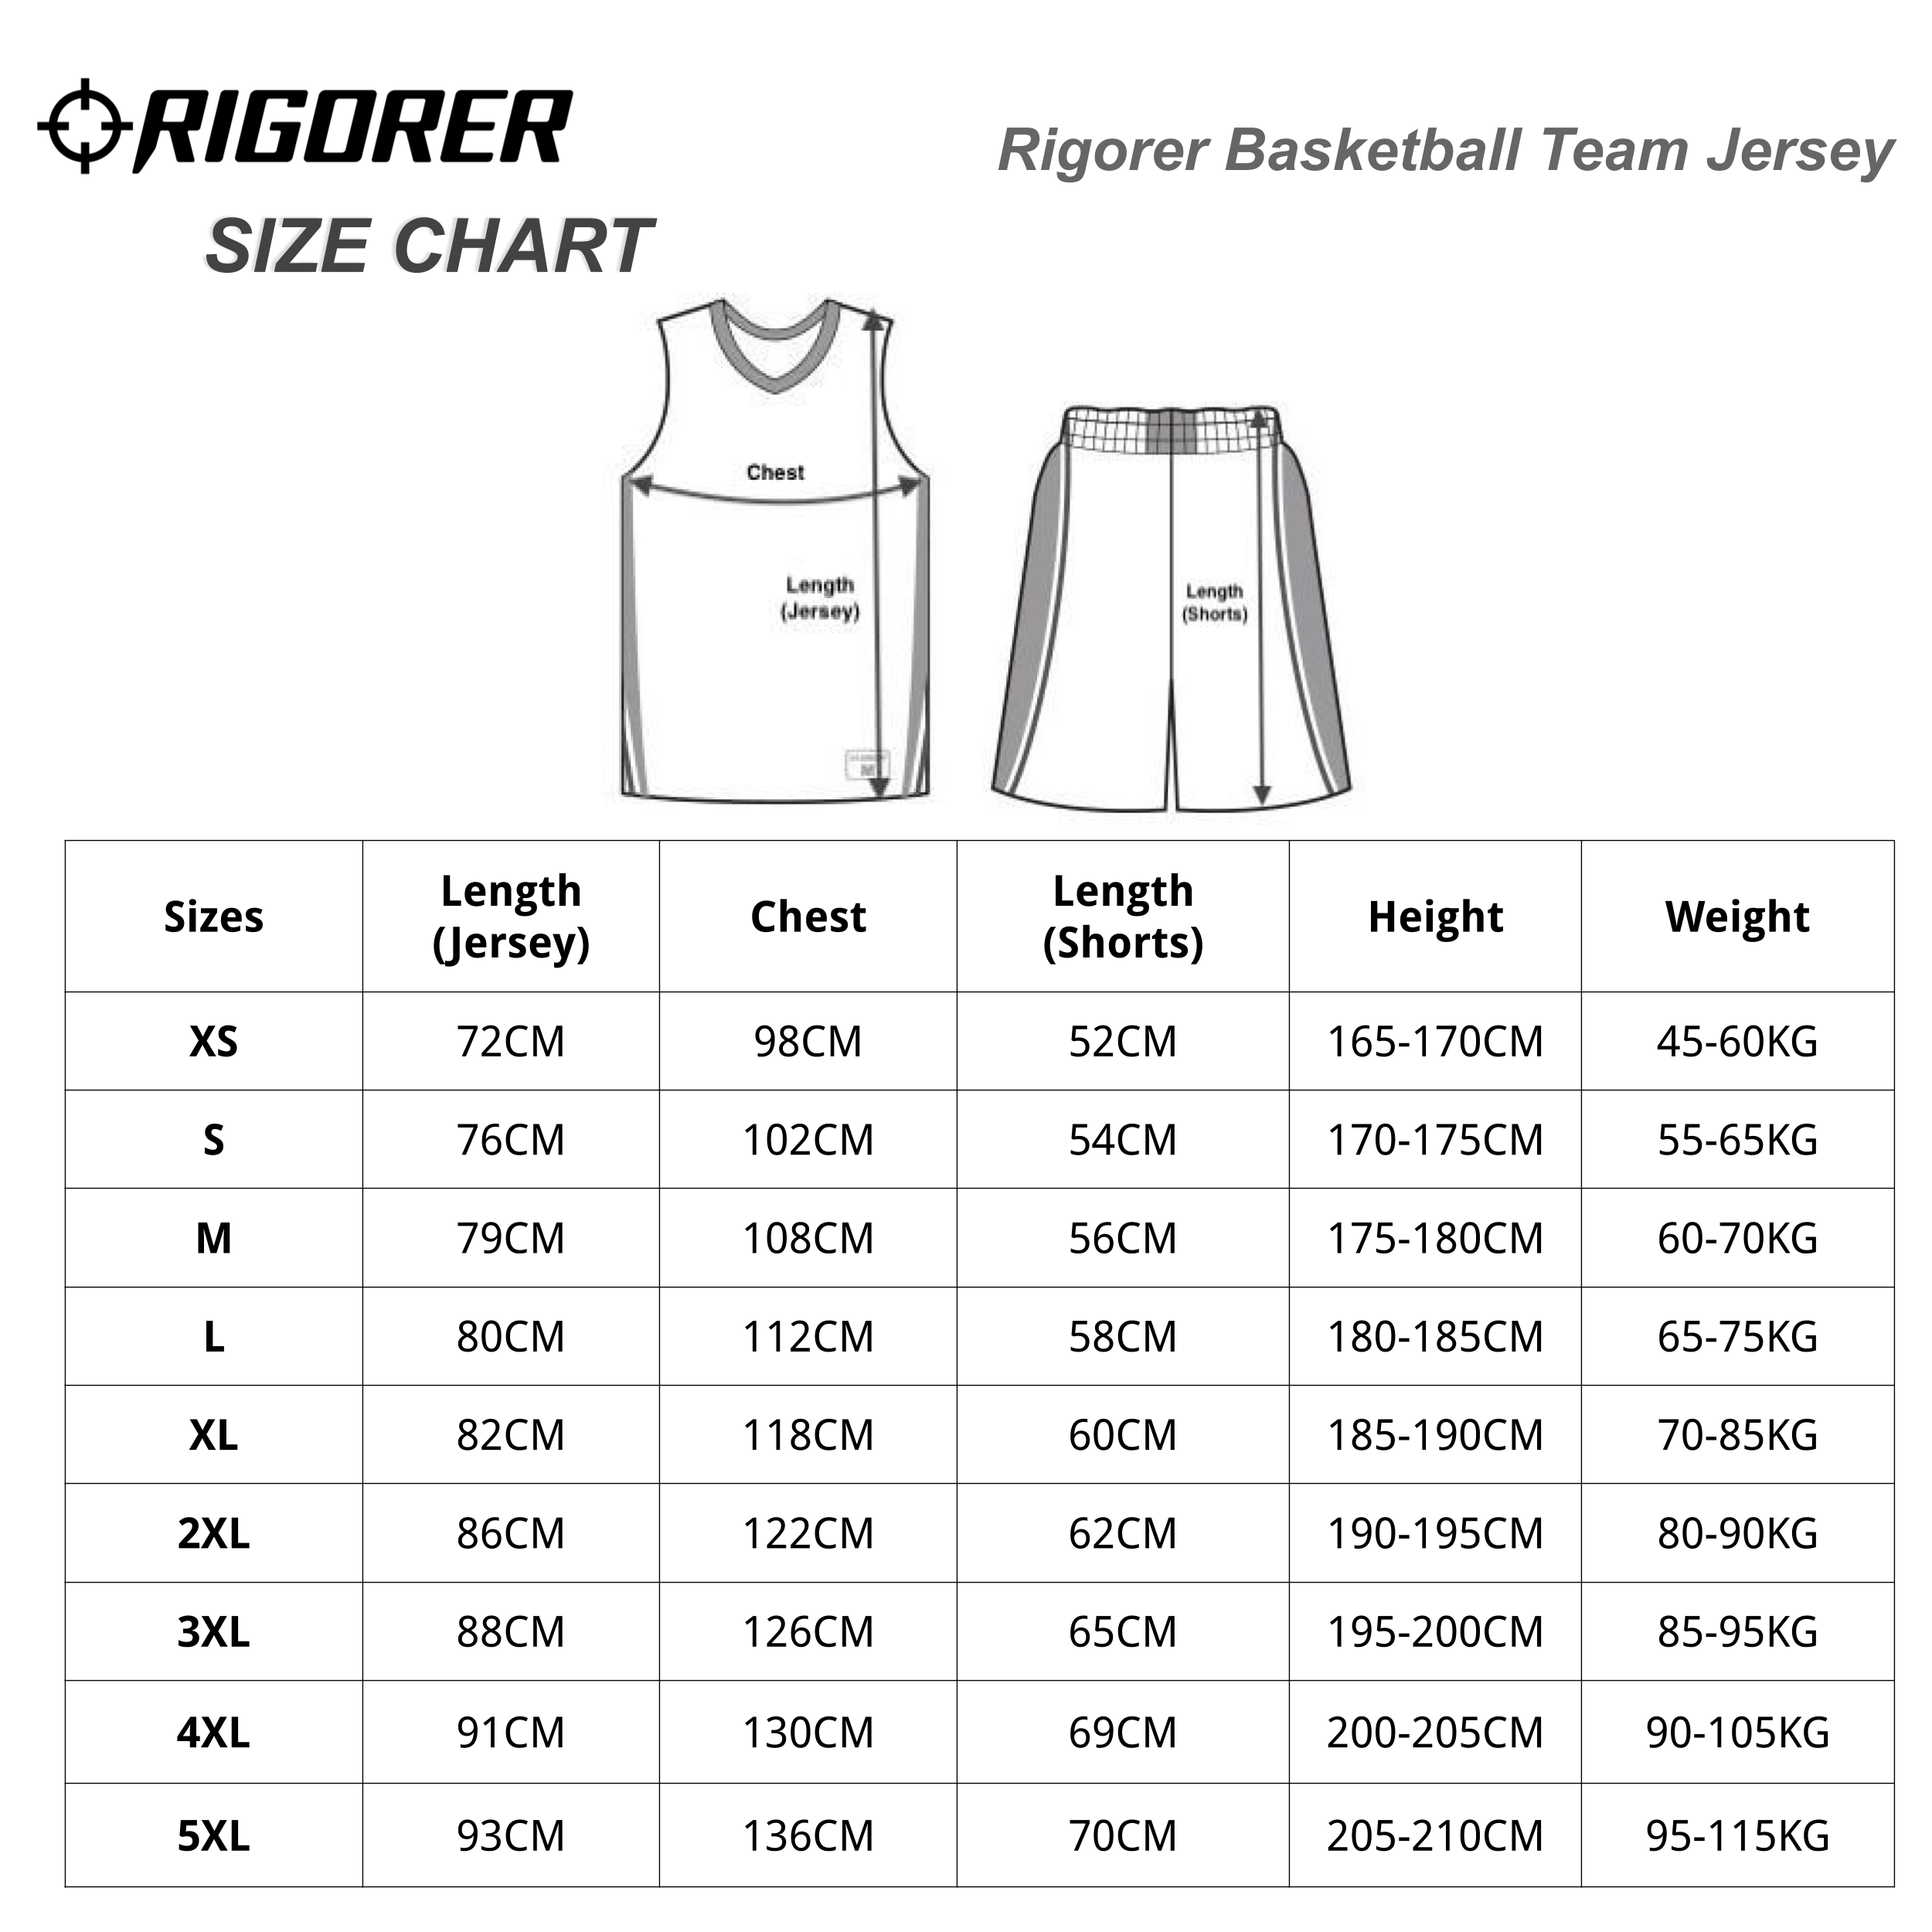 Rigorer Basketball Team Adult Jersey Sizing Chart